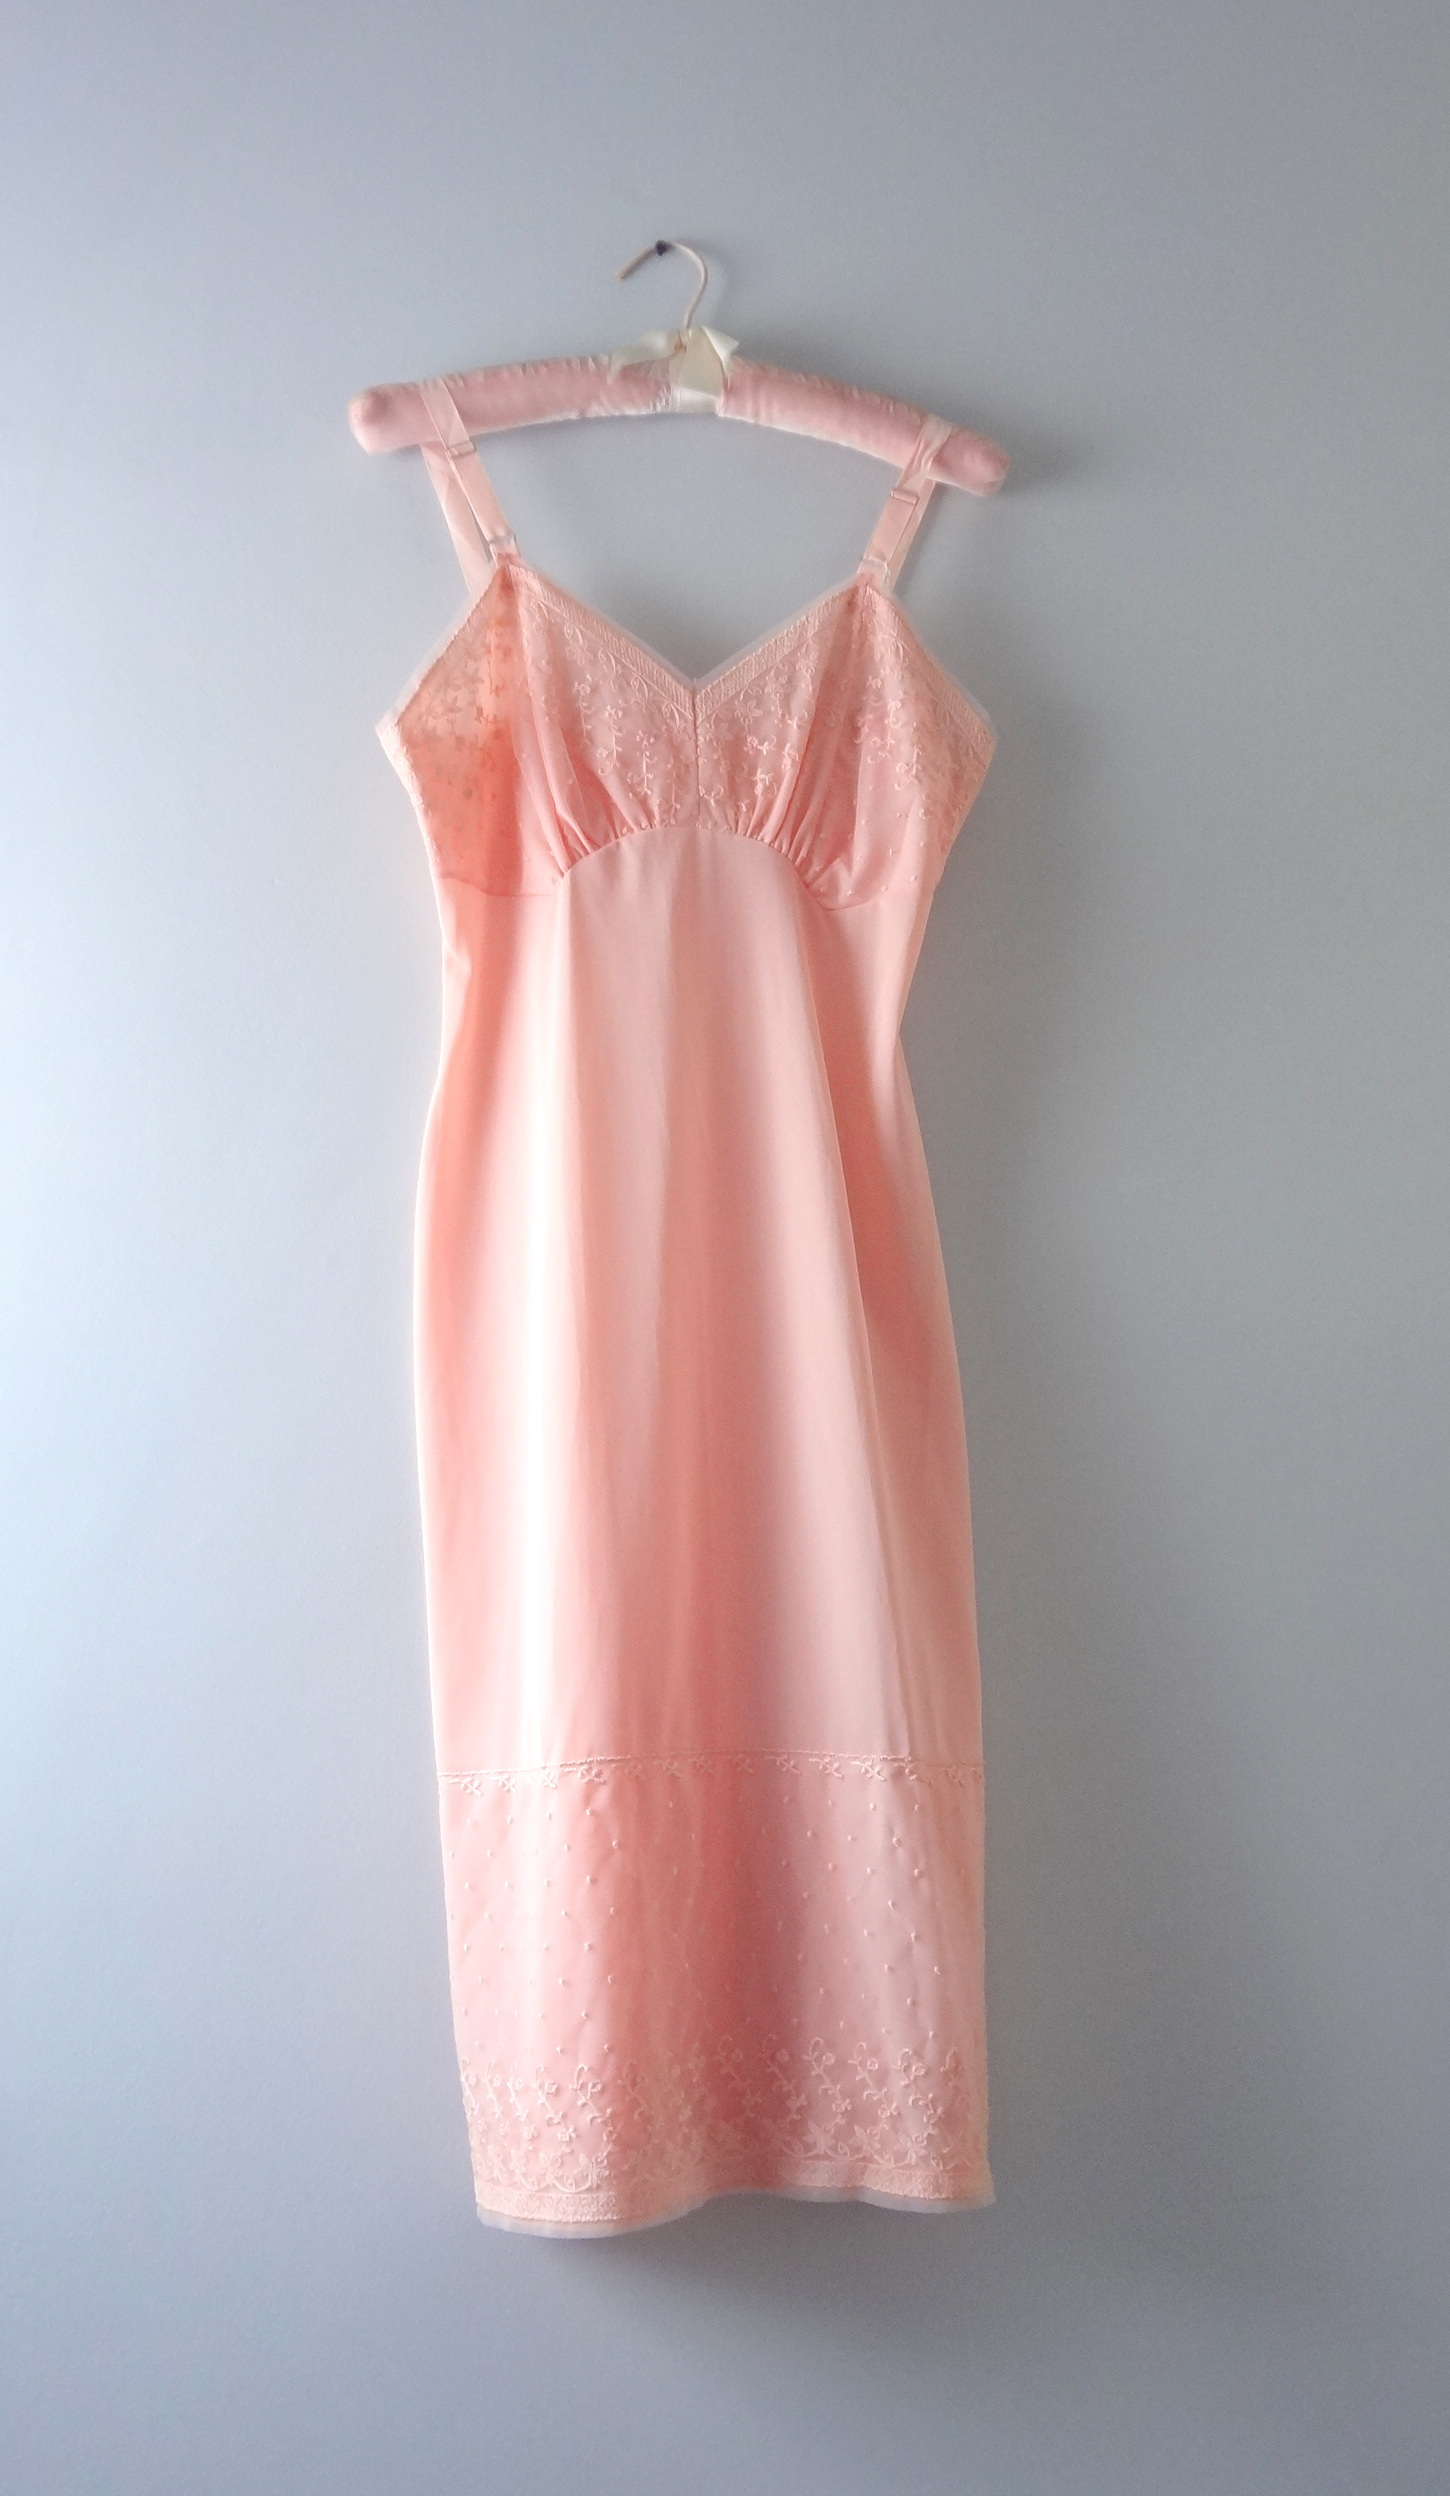 1950s Apricot Slip Dress Deadstock | Vintage Slip Shop $148